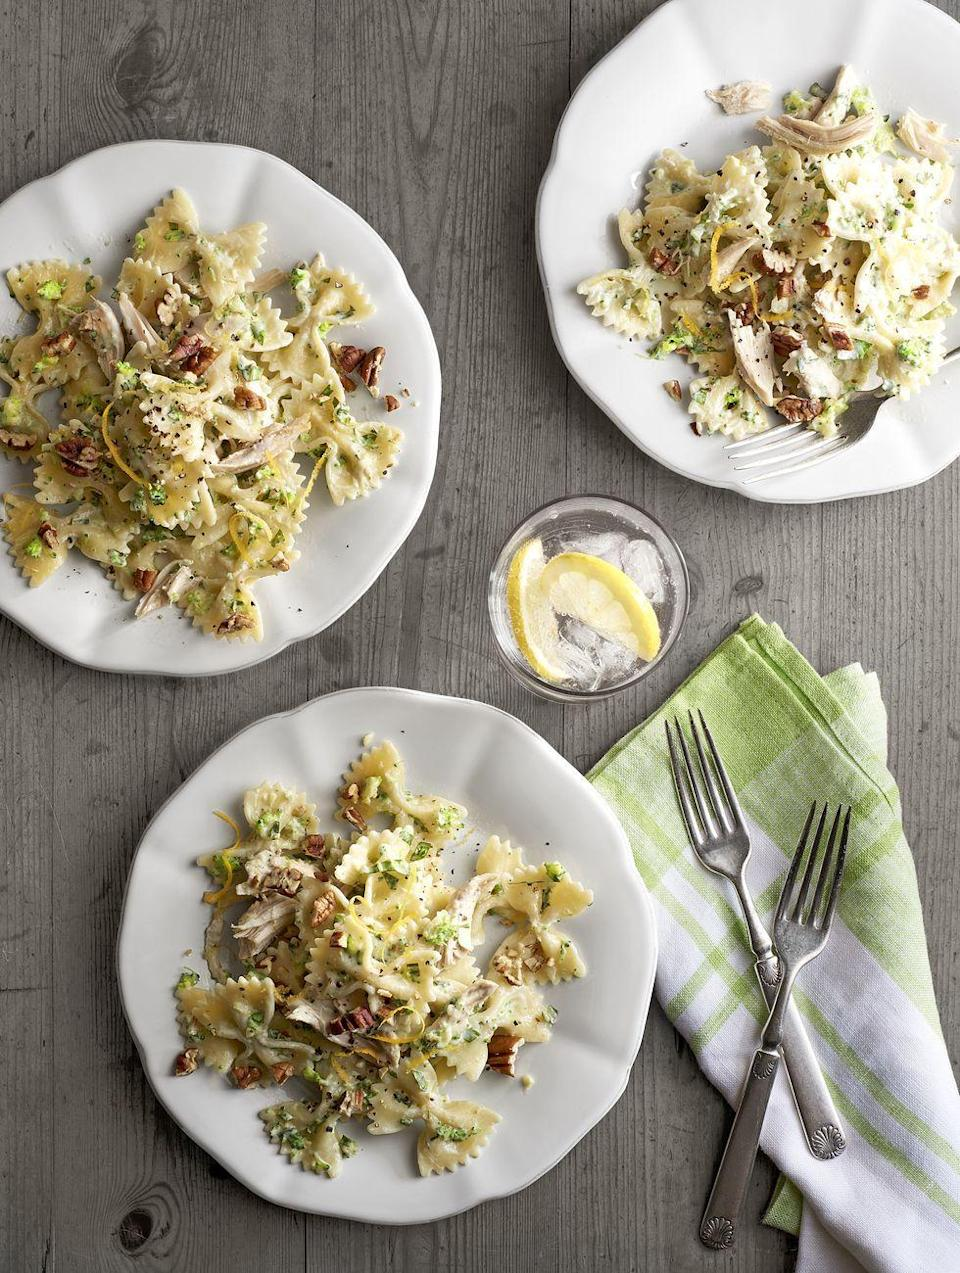 """<p>Pasta is always a great go-to when you're looking for a quick meal, but this dish with tasty chicken and a delicious creamy pesto makes it taste super decadent.<br></p><p><em><a href=""""https://www.womansday.com/food-recipes/food-drinks/recipes/a40364/creamy-chicken-broccoli-pesto-bow-ties-recipe-clx0215/"""" rel=""""nofollow noopener"""" target=""""_blank"""" data-ylk=""""slk:Get the Creamy Chicken-and-Broccoli Pesto Bow Ties recipe."""" class=""""link rapid-noclick-resp"""">Get the Creamy Chicken-and-Broccoli Pesto Bow Ties recipe.</a></em></p>"""